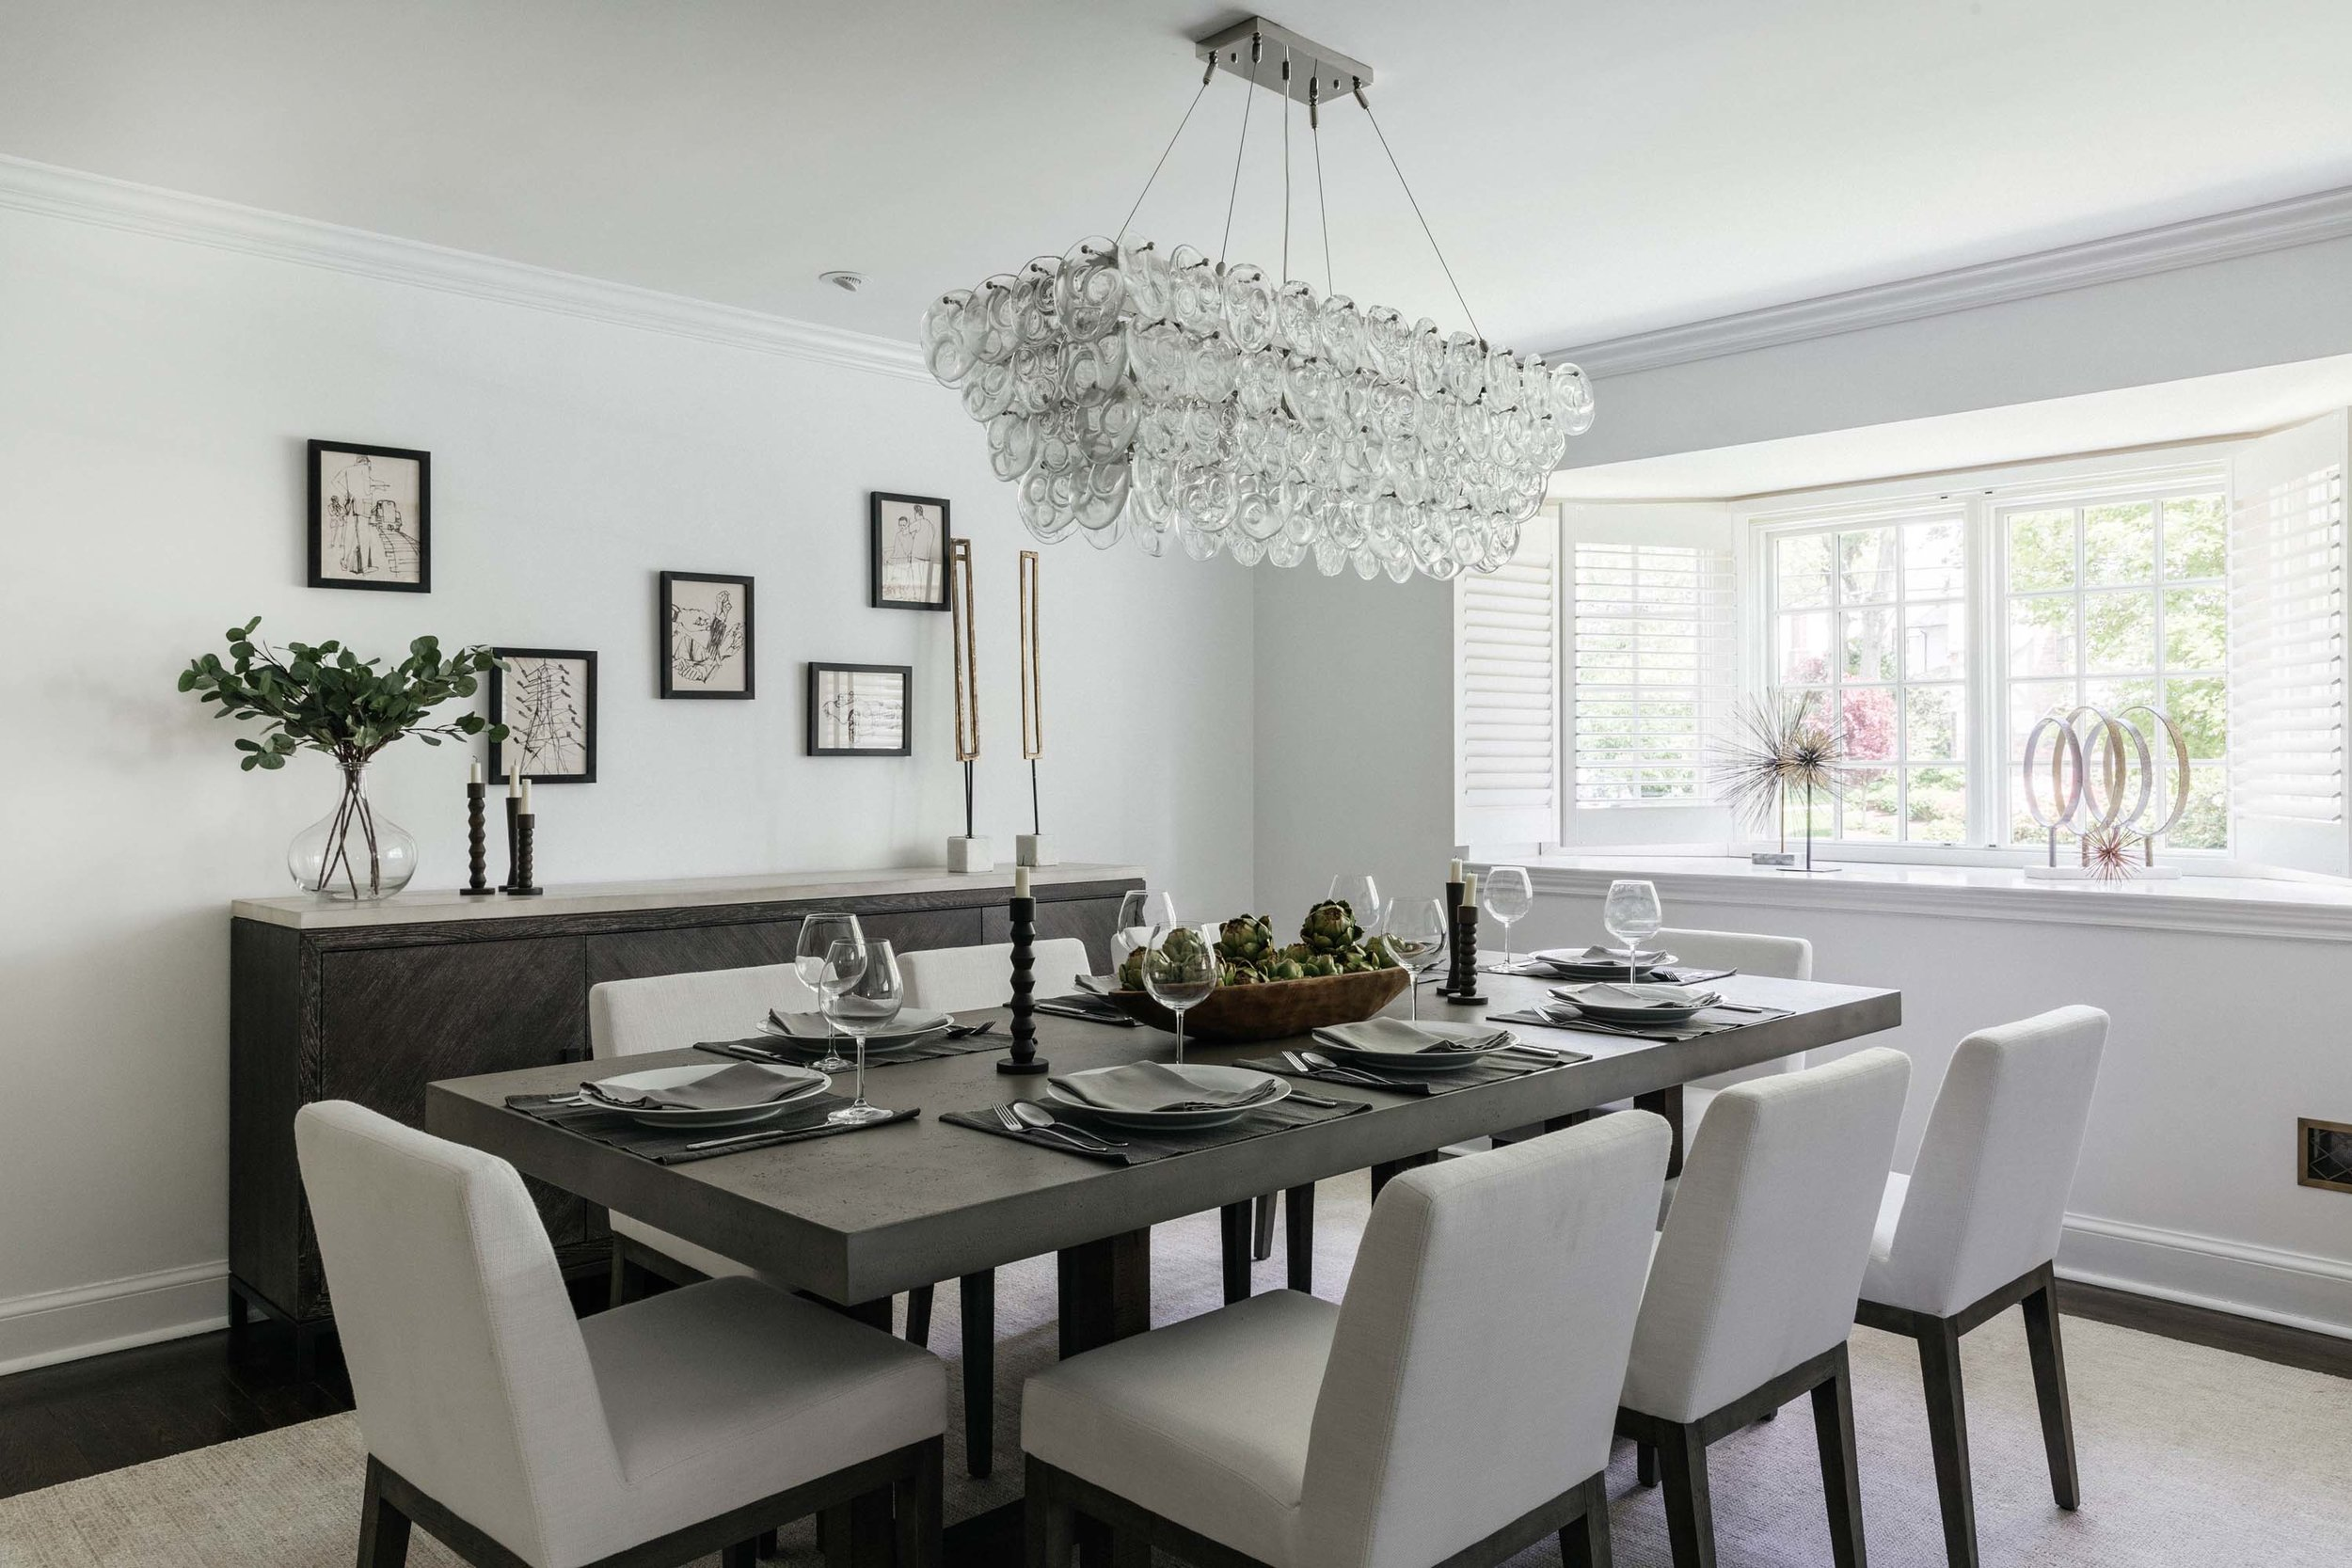 Dining room with dining table, plates, wine glasses, white painted walls and modern chandelier